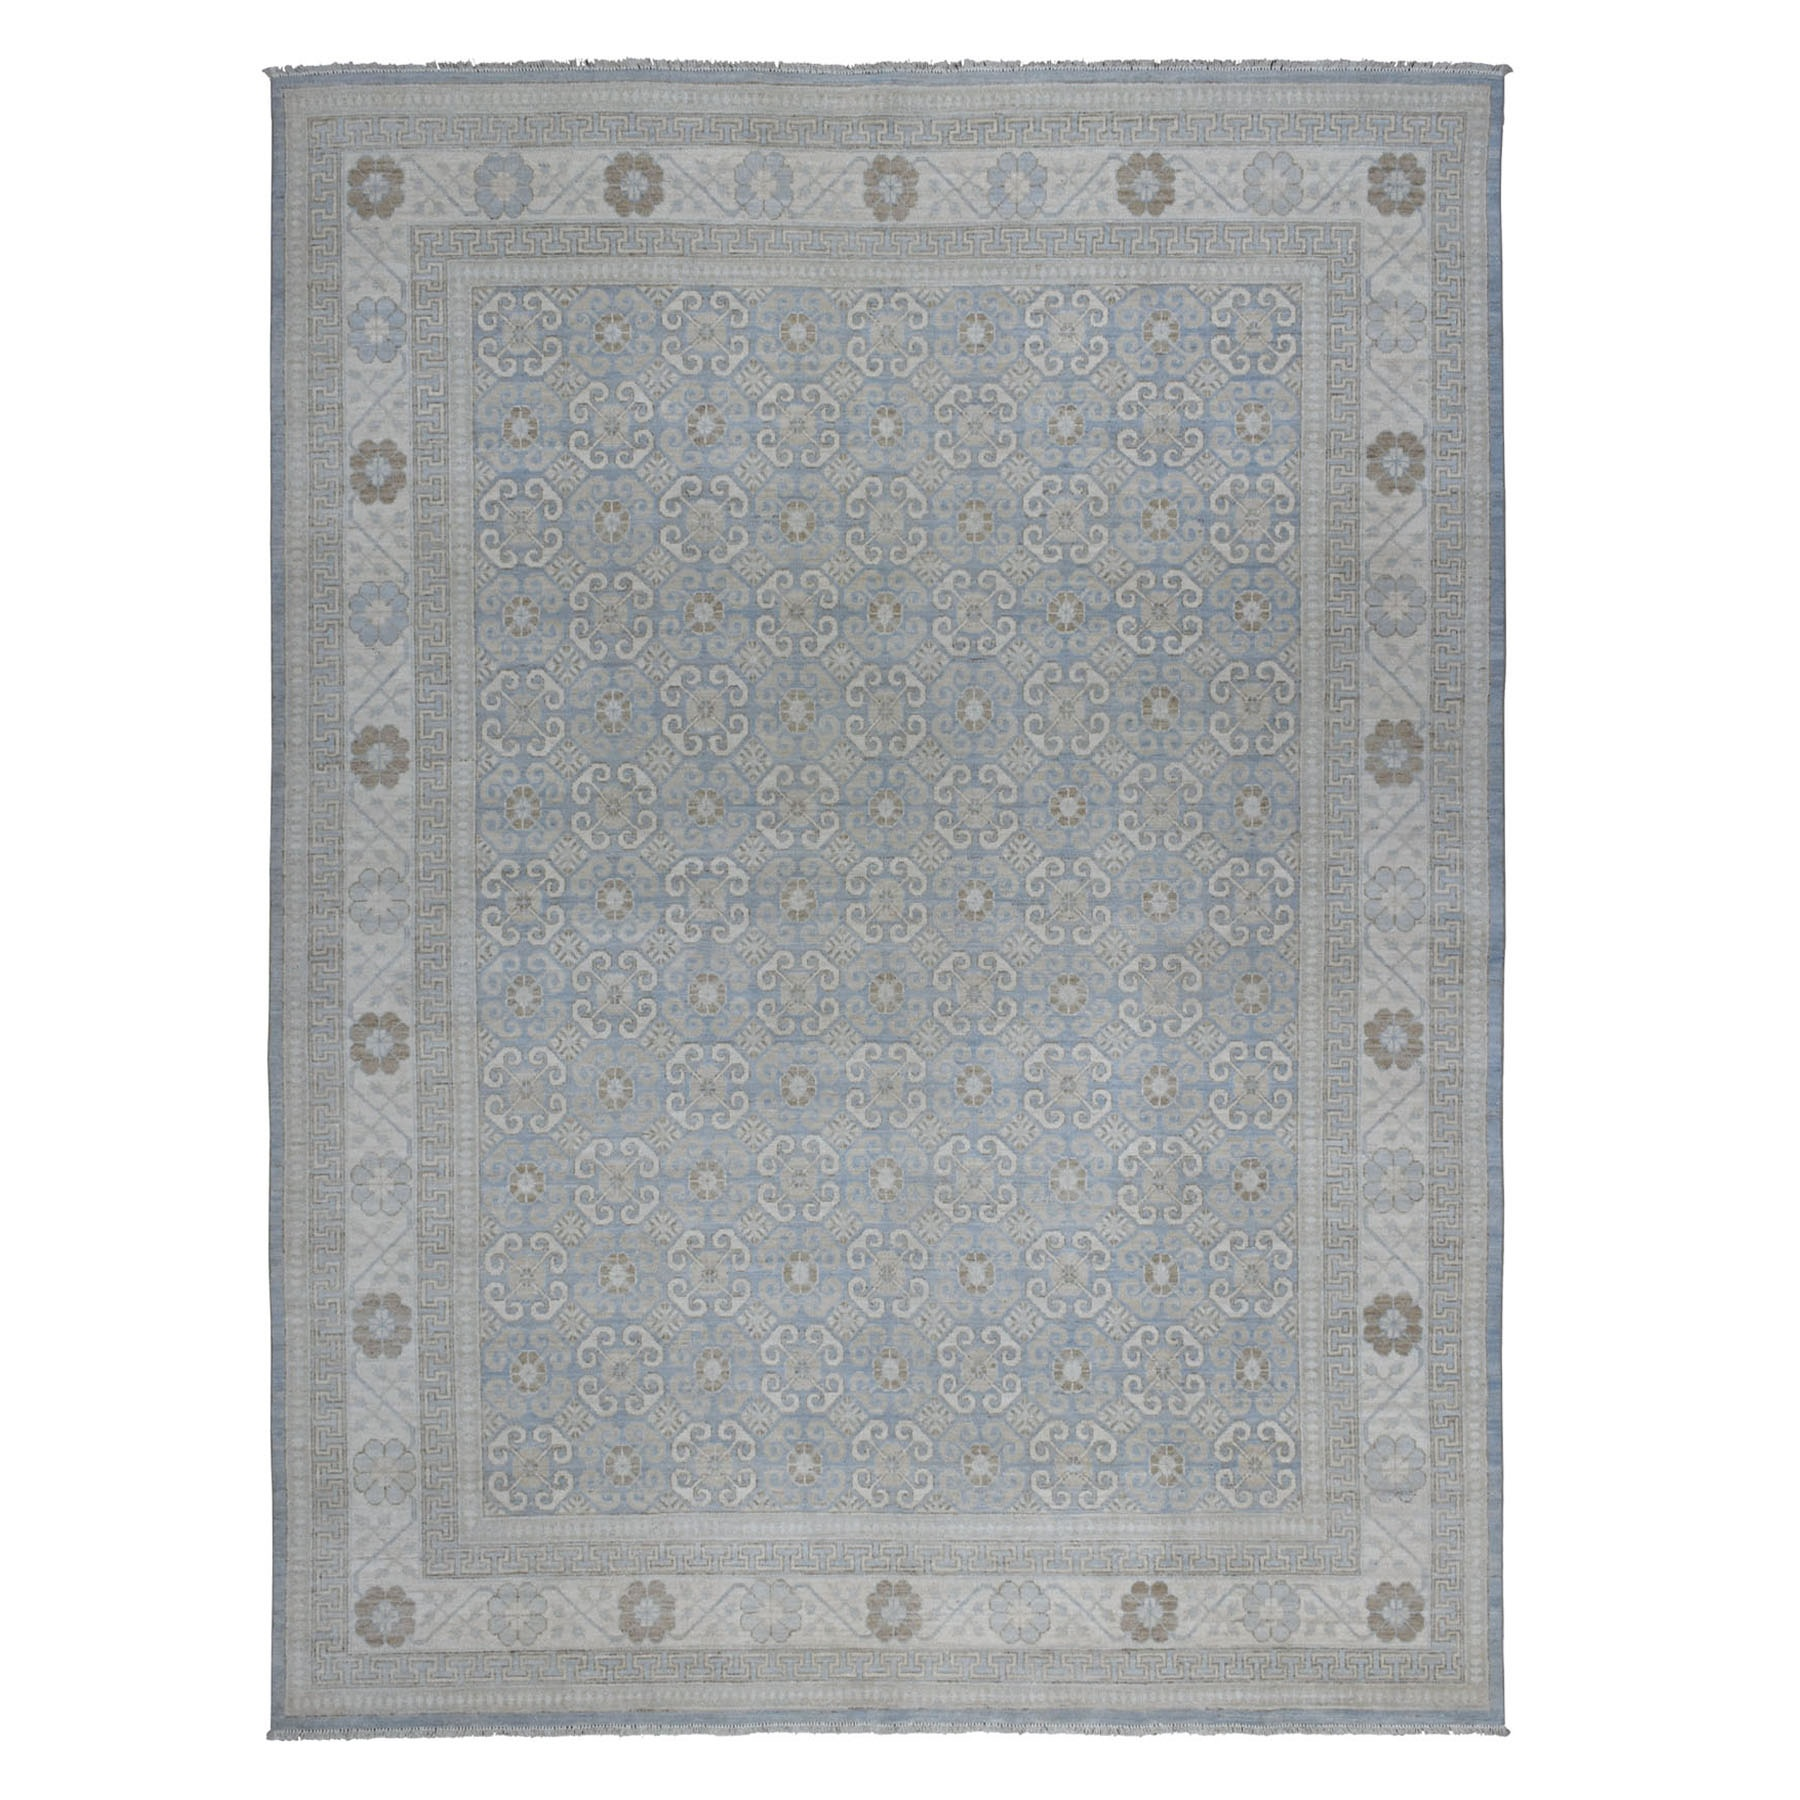 "8'10""x11'8"" Blue Stone Wash Peshawar with Khotan Design Pure Wool Hand Knotted Oriental Rug"